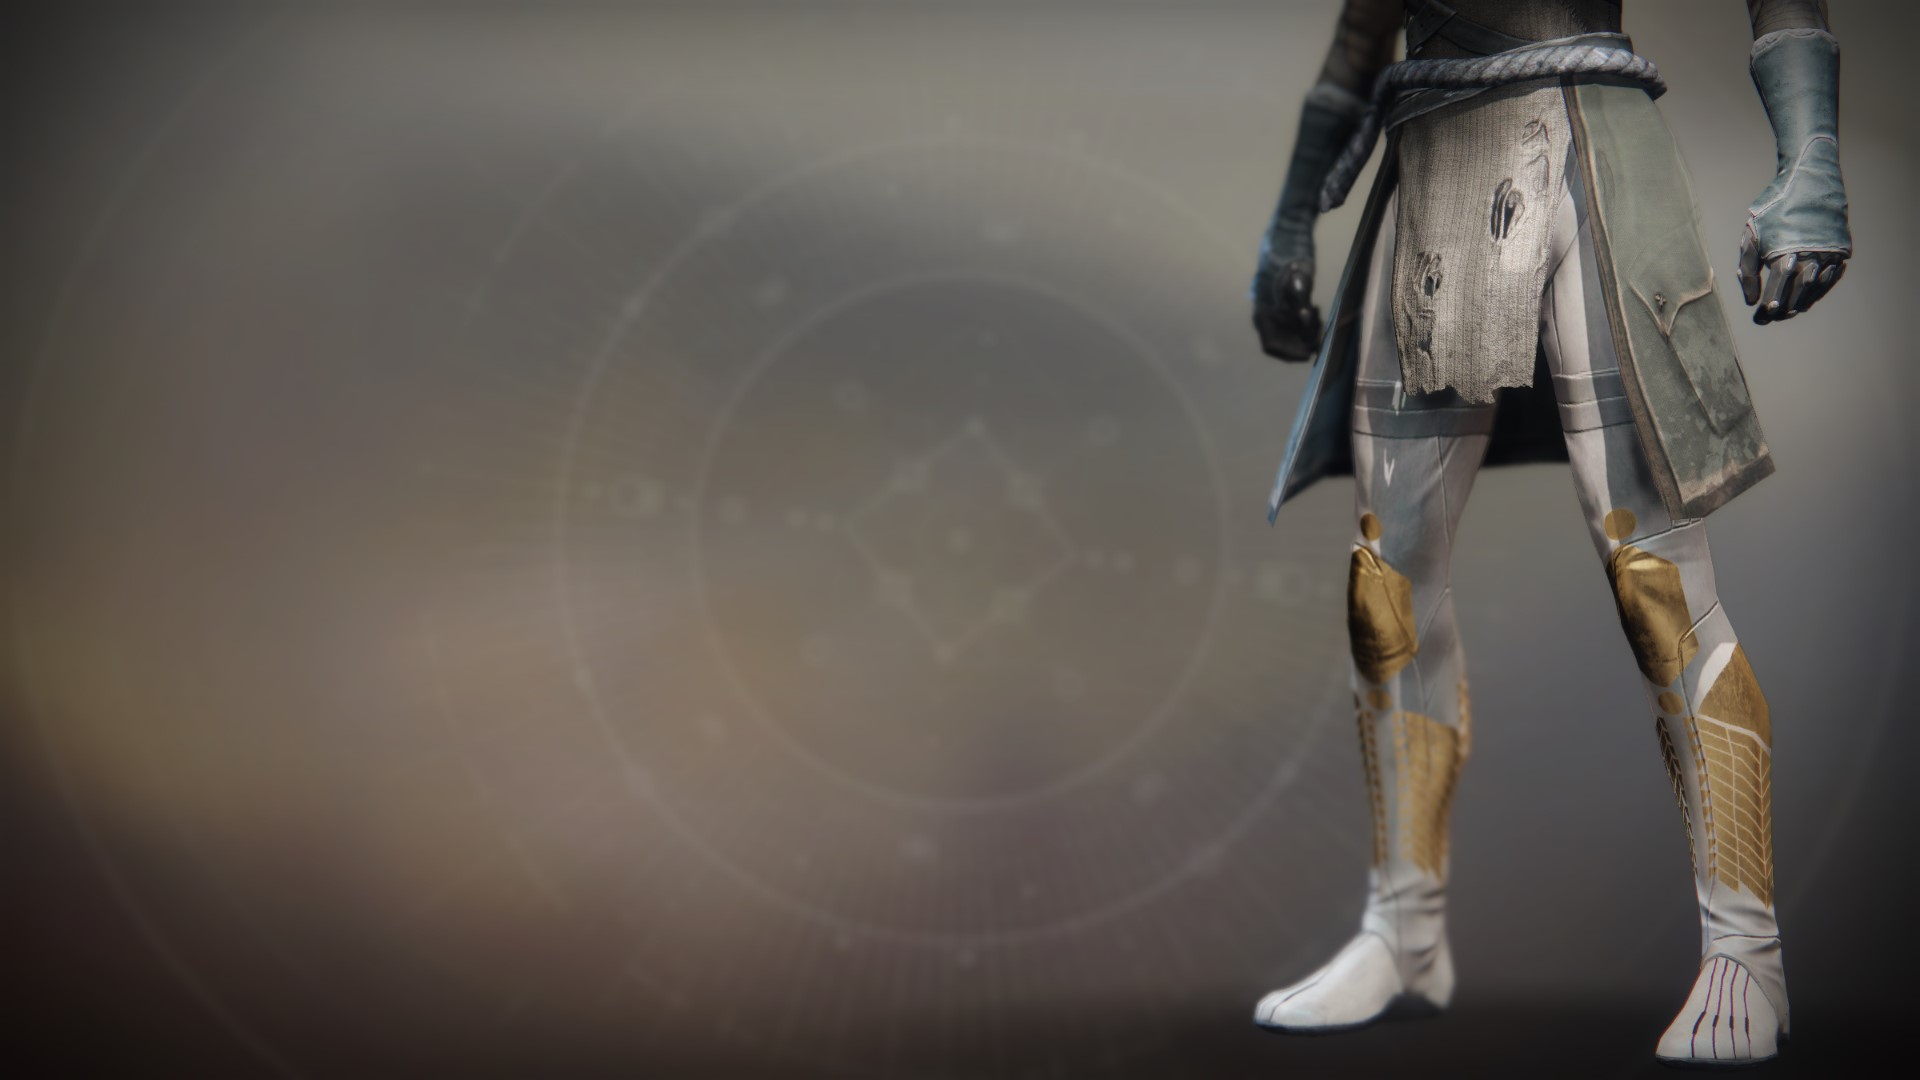 An in-game render of the Boots of the Fulminator.